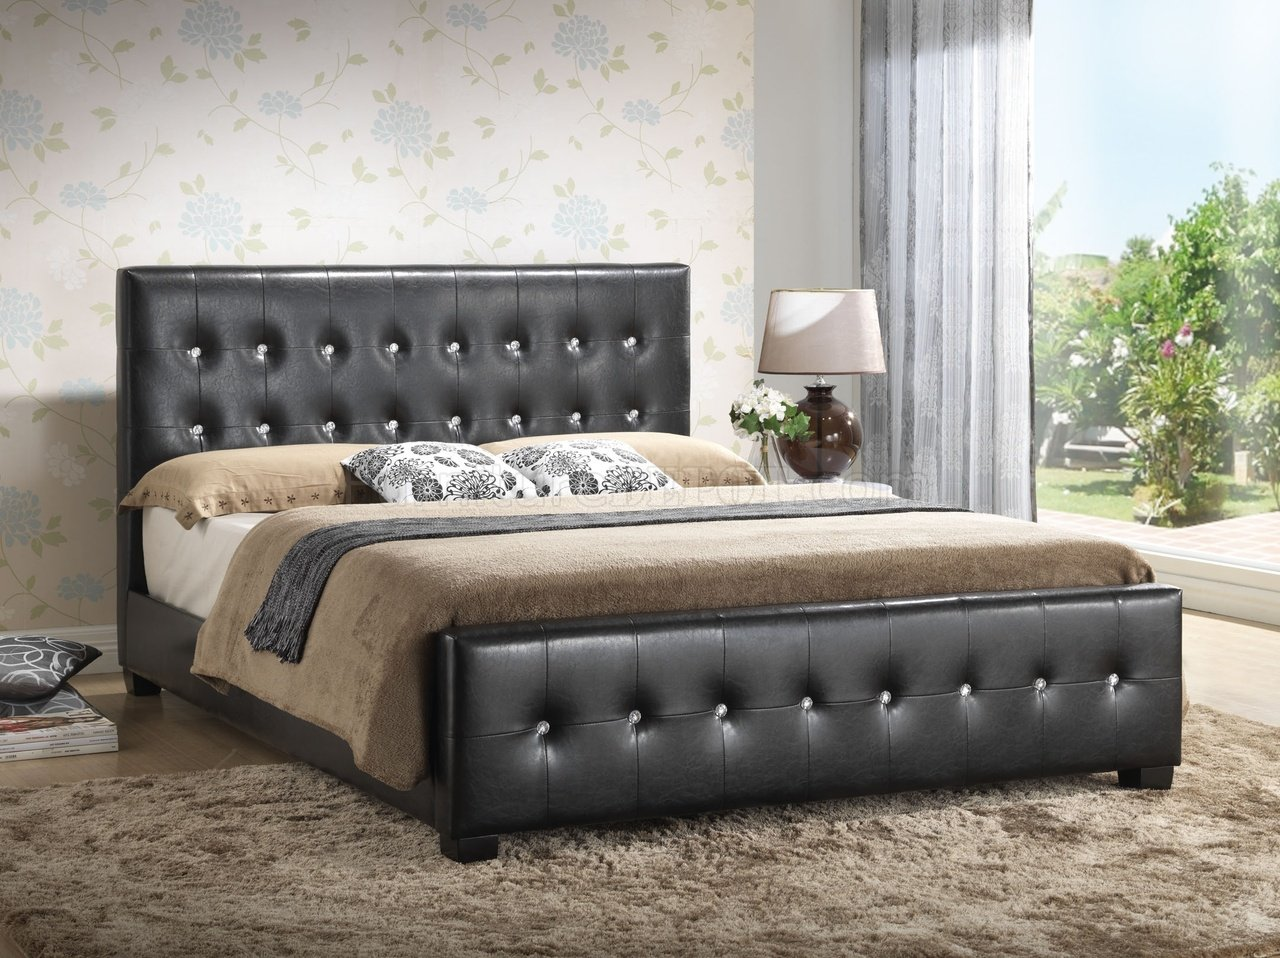 modern gray sofa set how to get rid of bed g2583 upholstered in black leatherette by glory